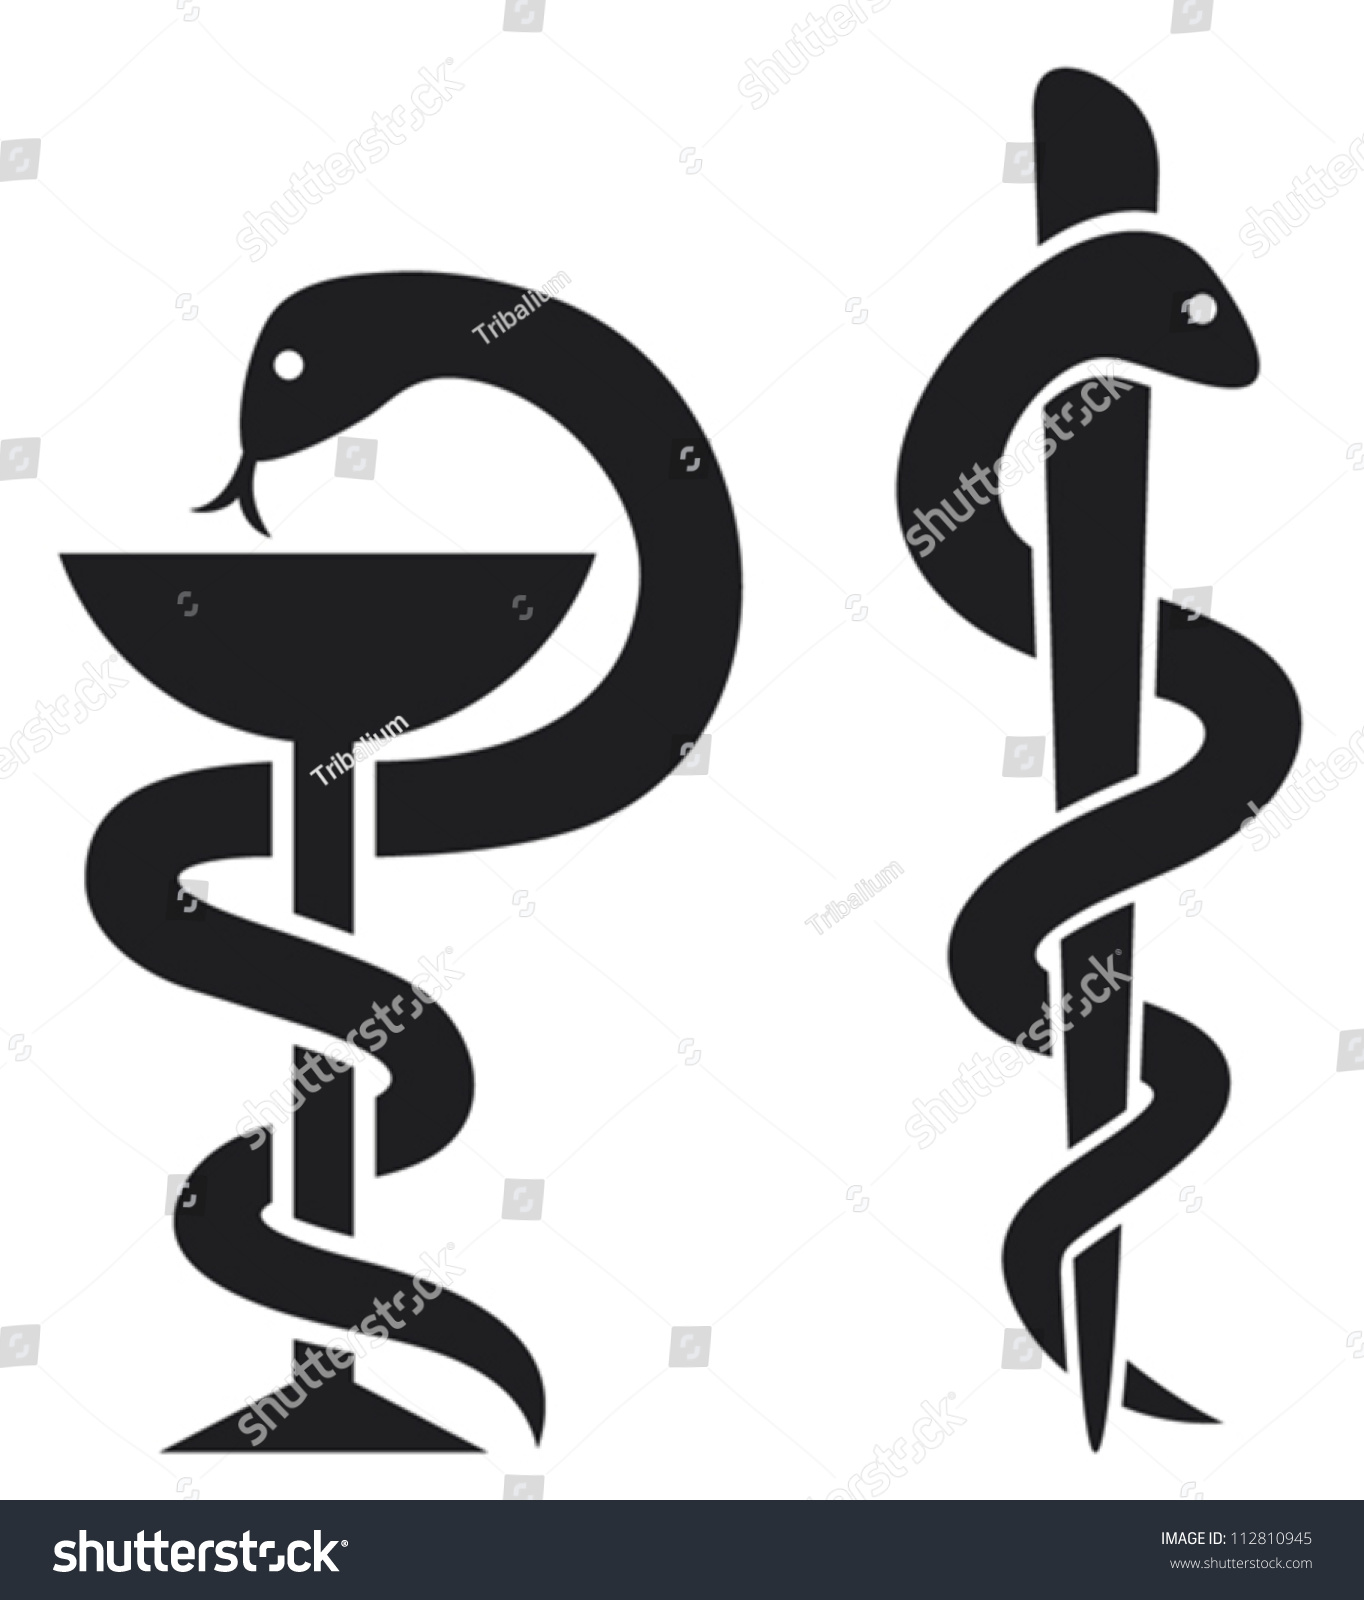 Stock images royalty free images vectors shutterstock medical symbol emblem for drugstore snake and a bowl pharmacy icon buycottarizona Image collections